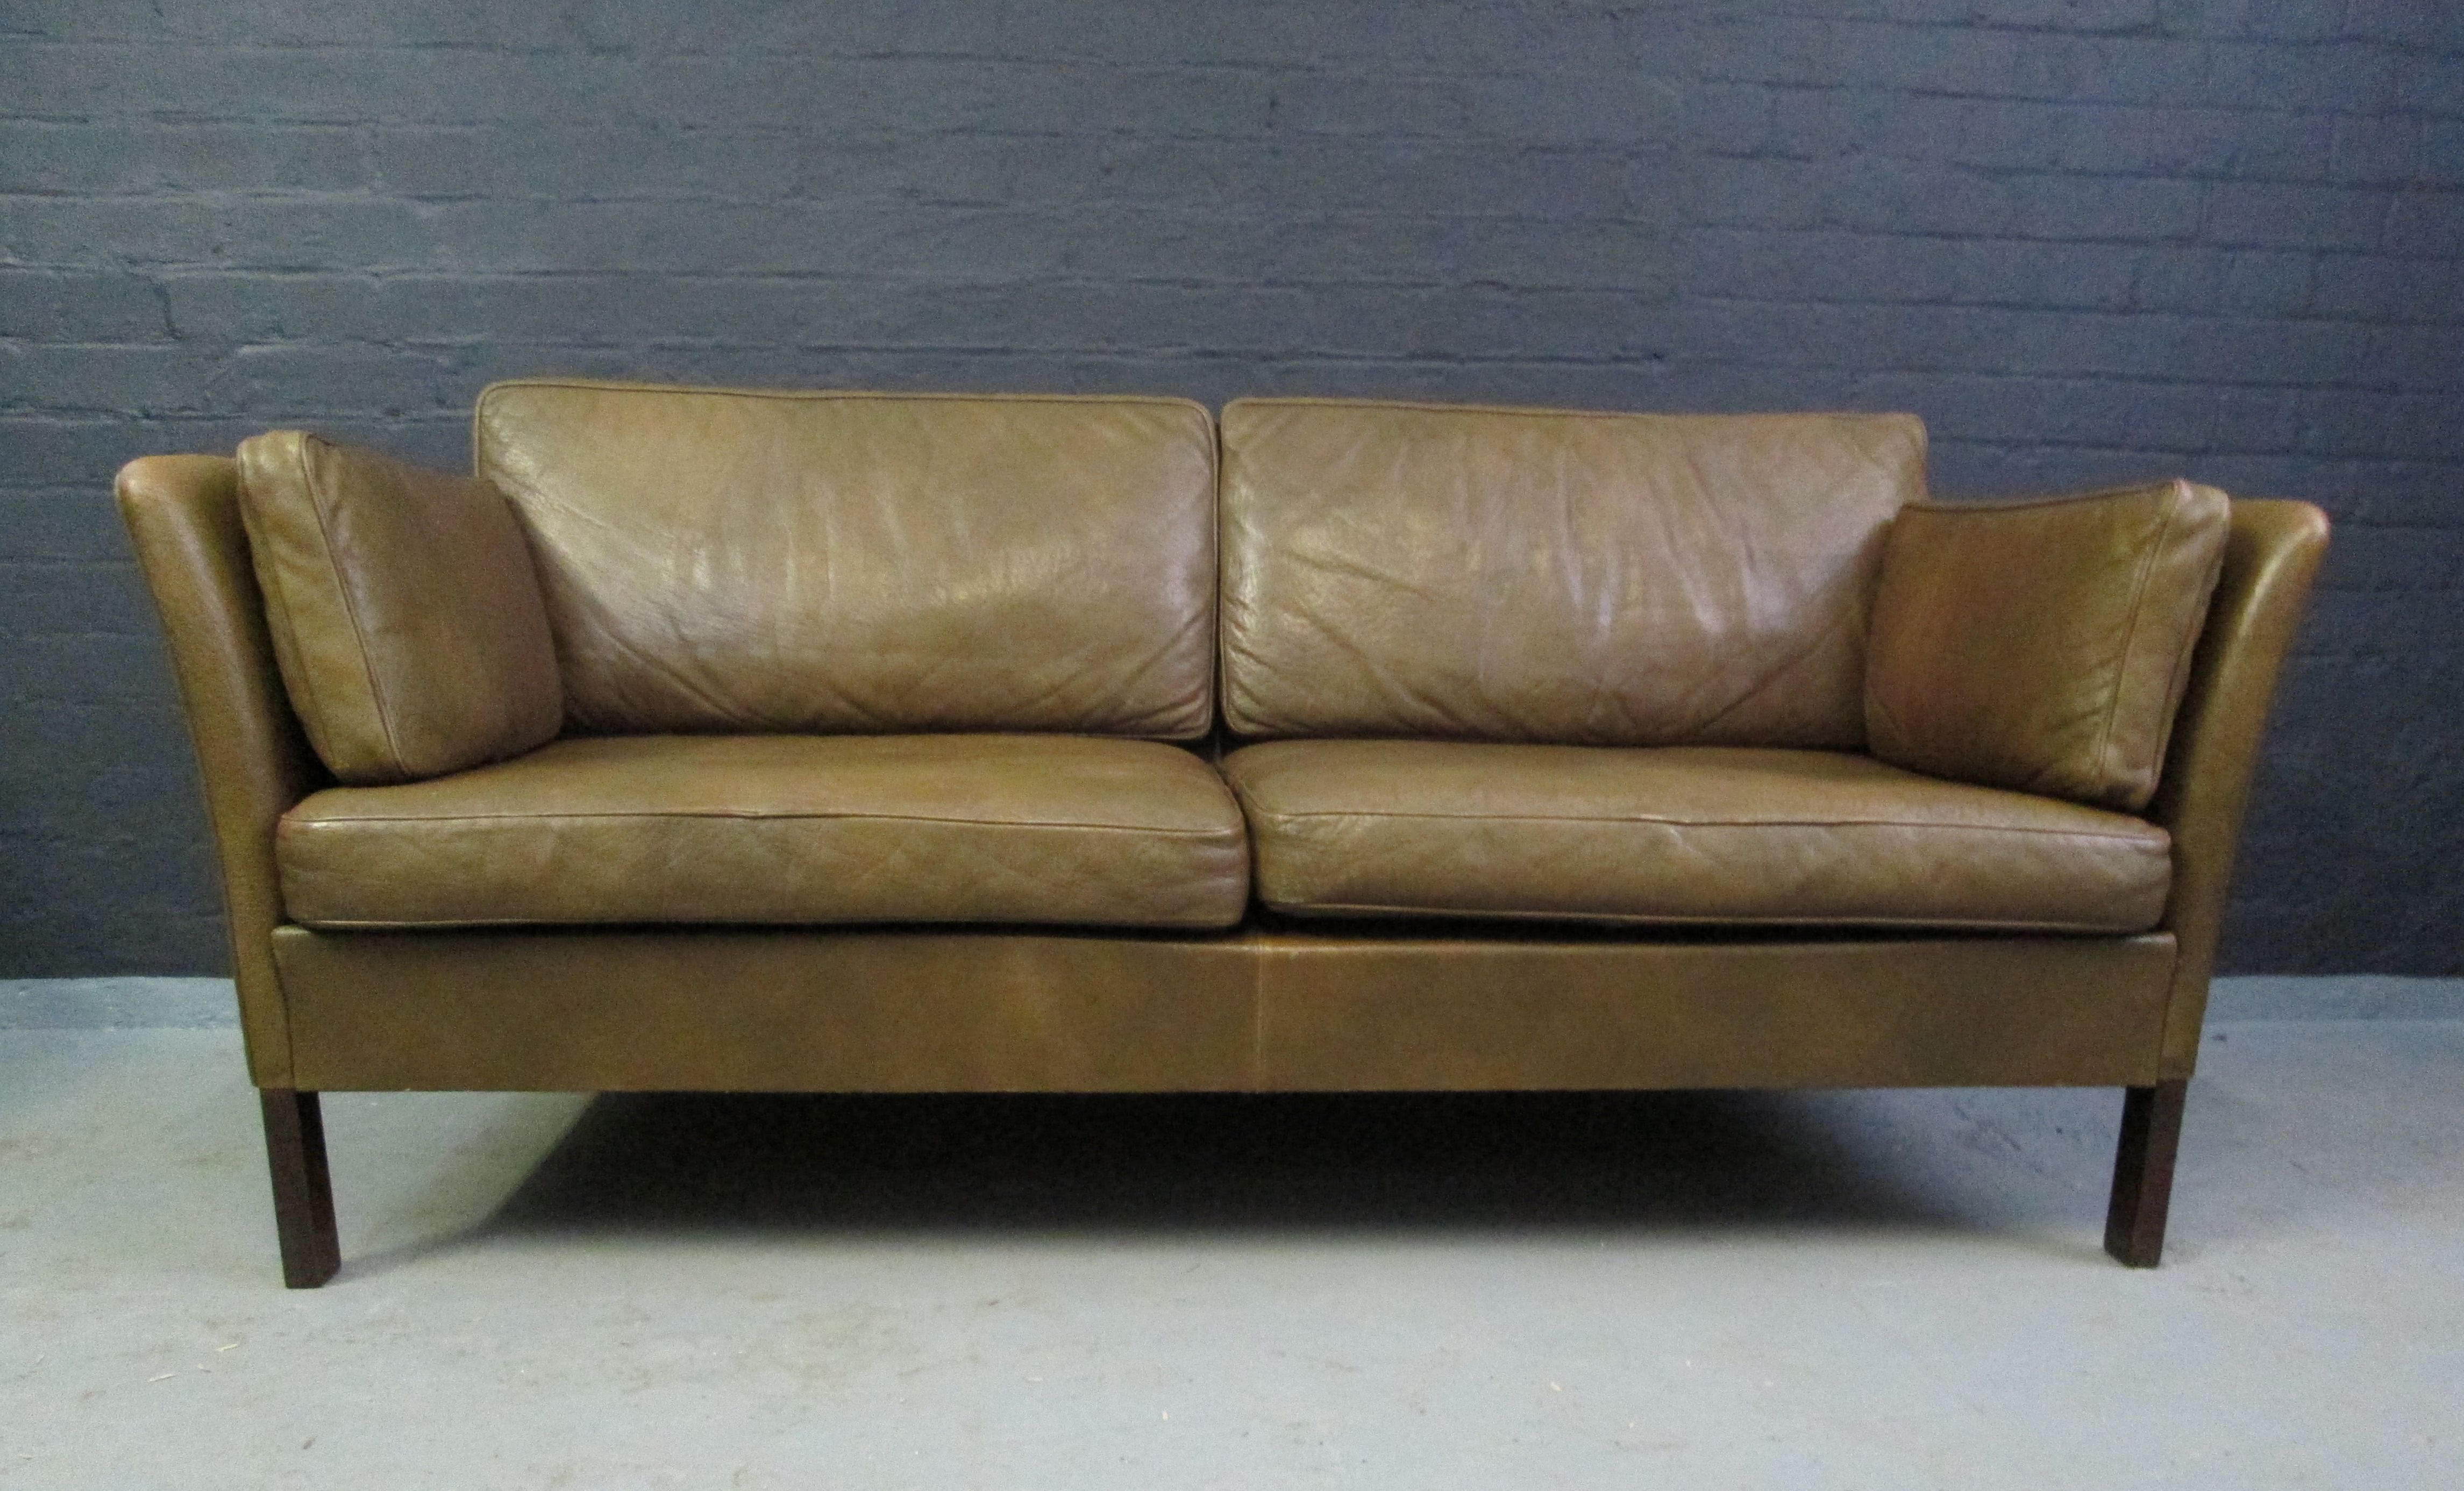 scandinavian sofas uk sleeper sofa small room olive green leather 3 seater chesterfield